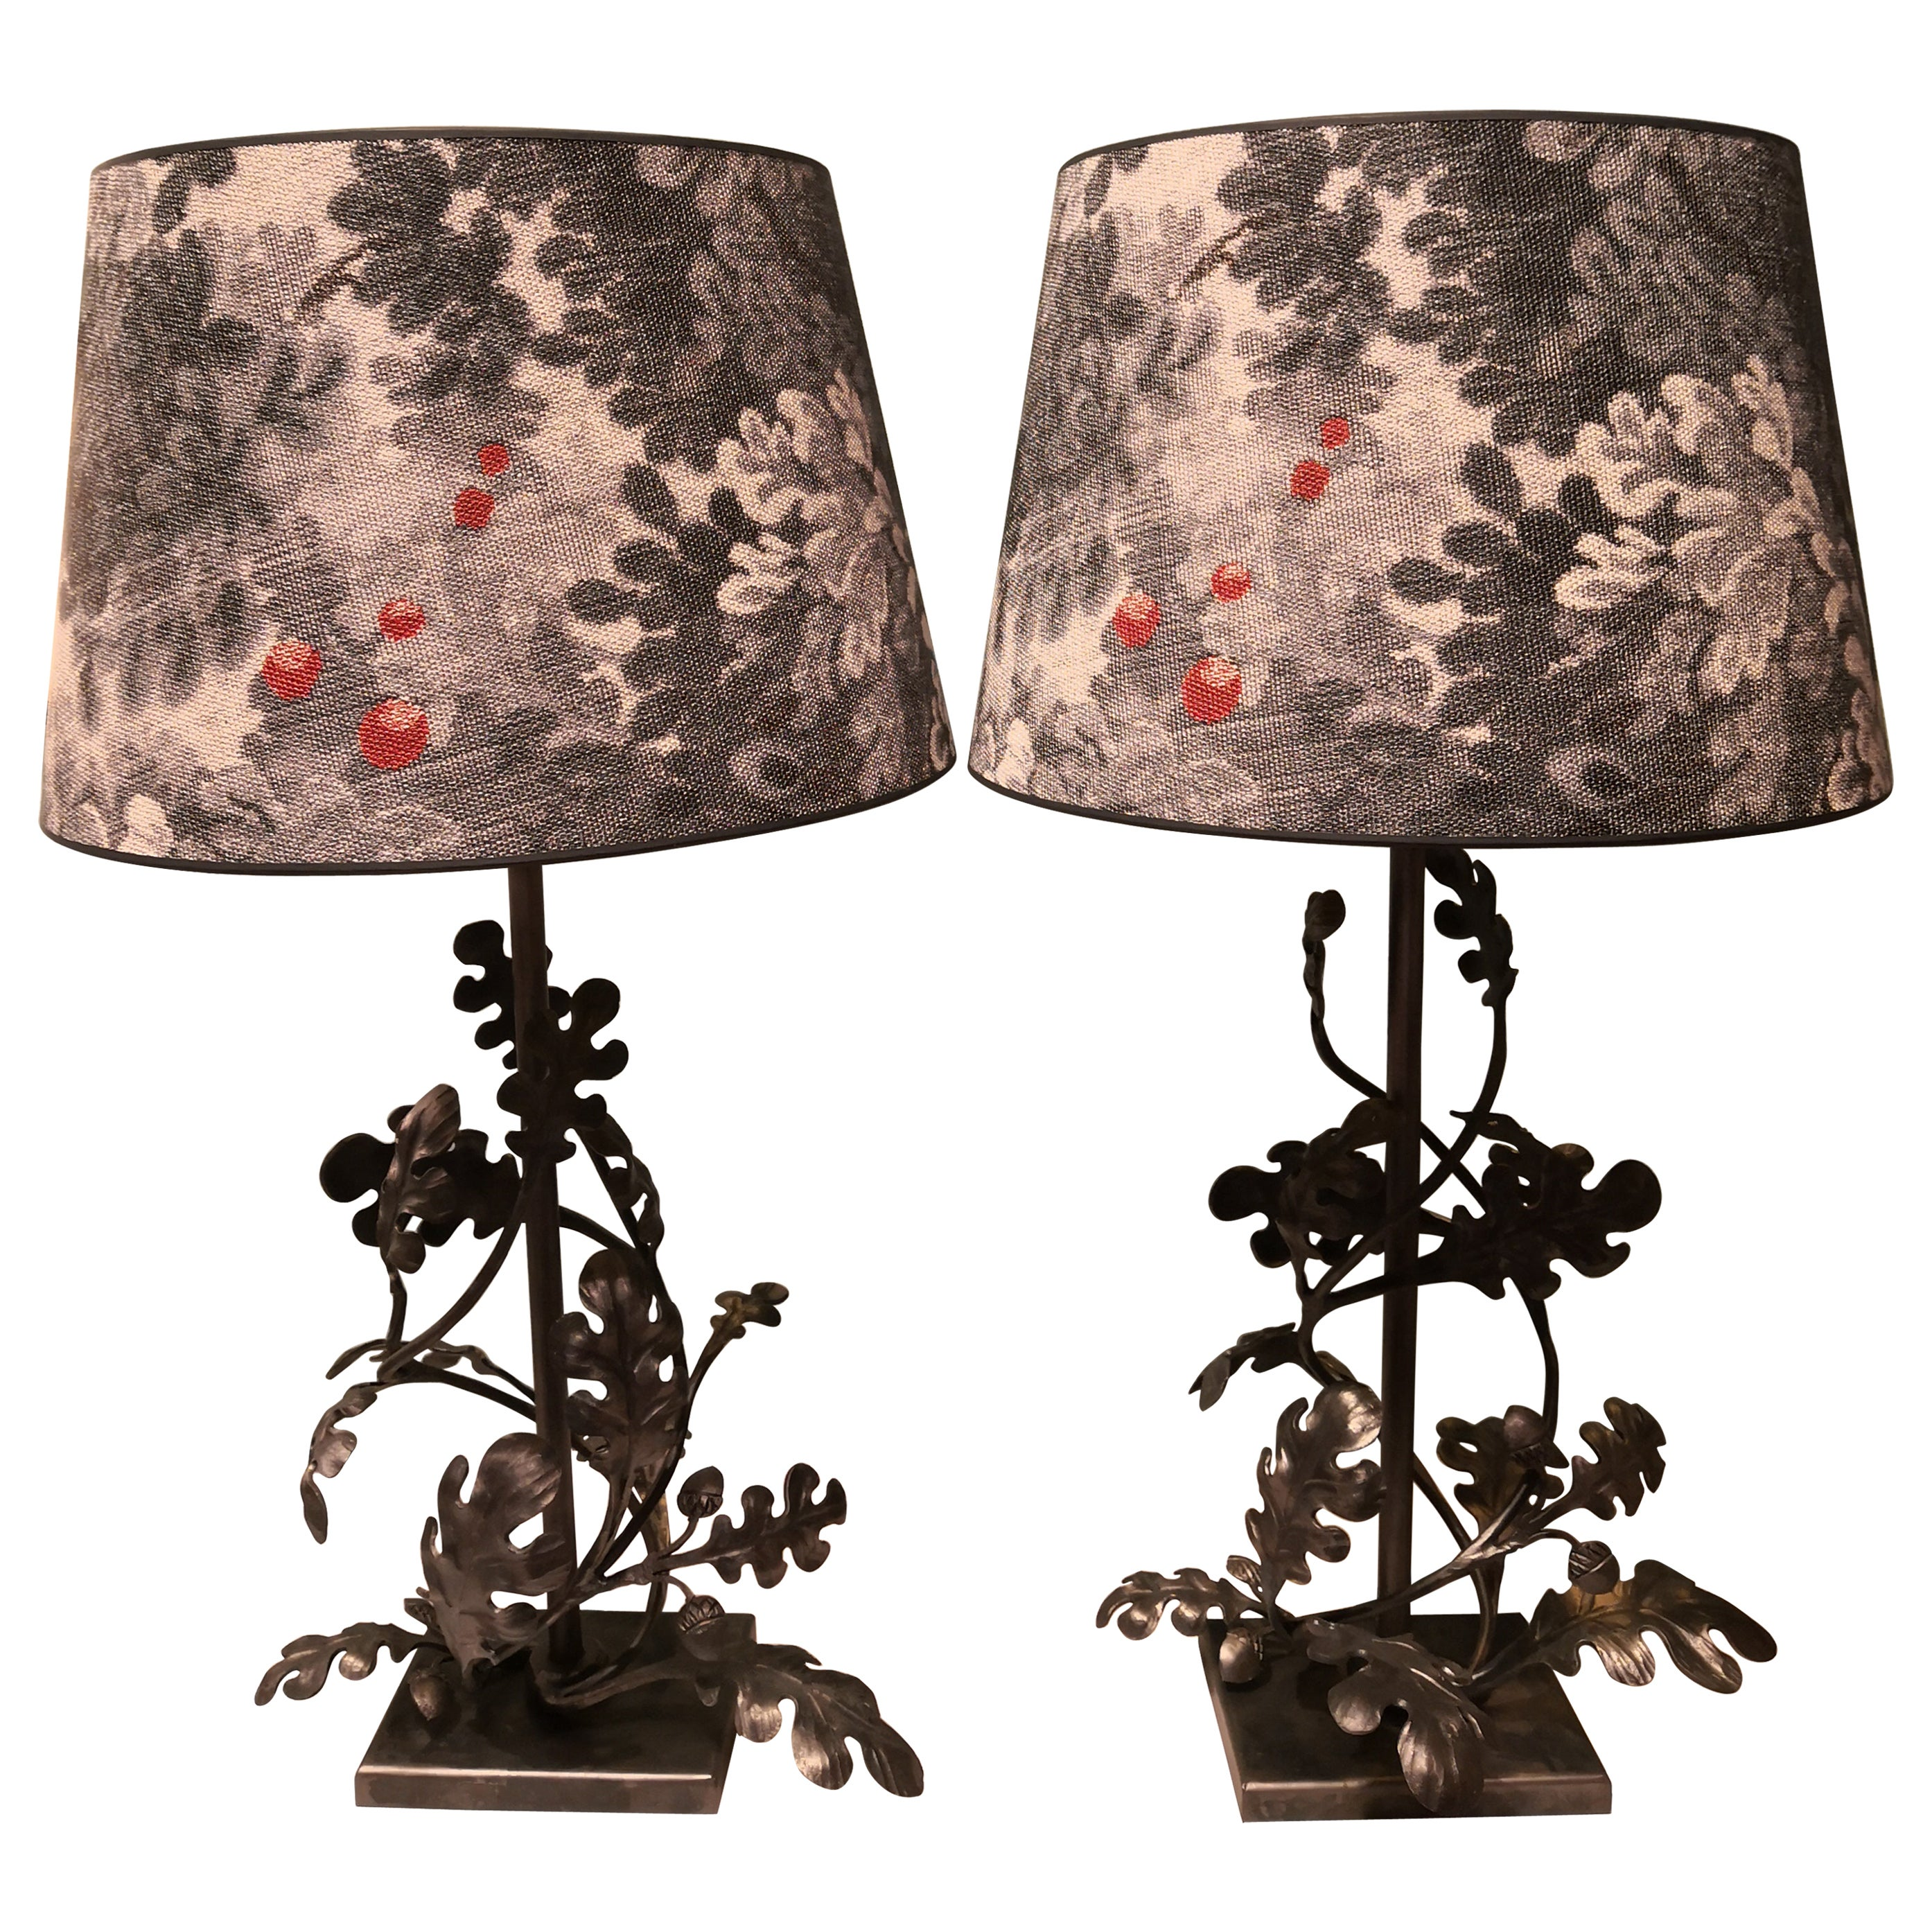 Country Style Pair of Table Lamps Handmade Iron Sofina Boutique Kitzbuehel